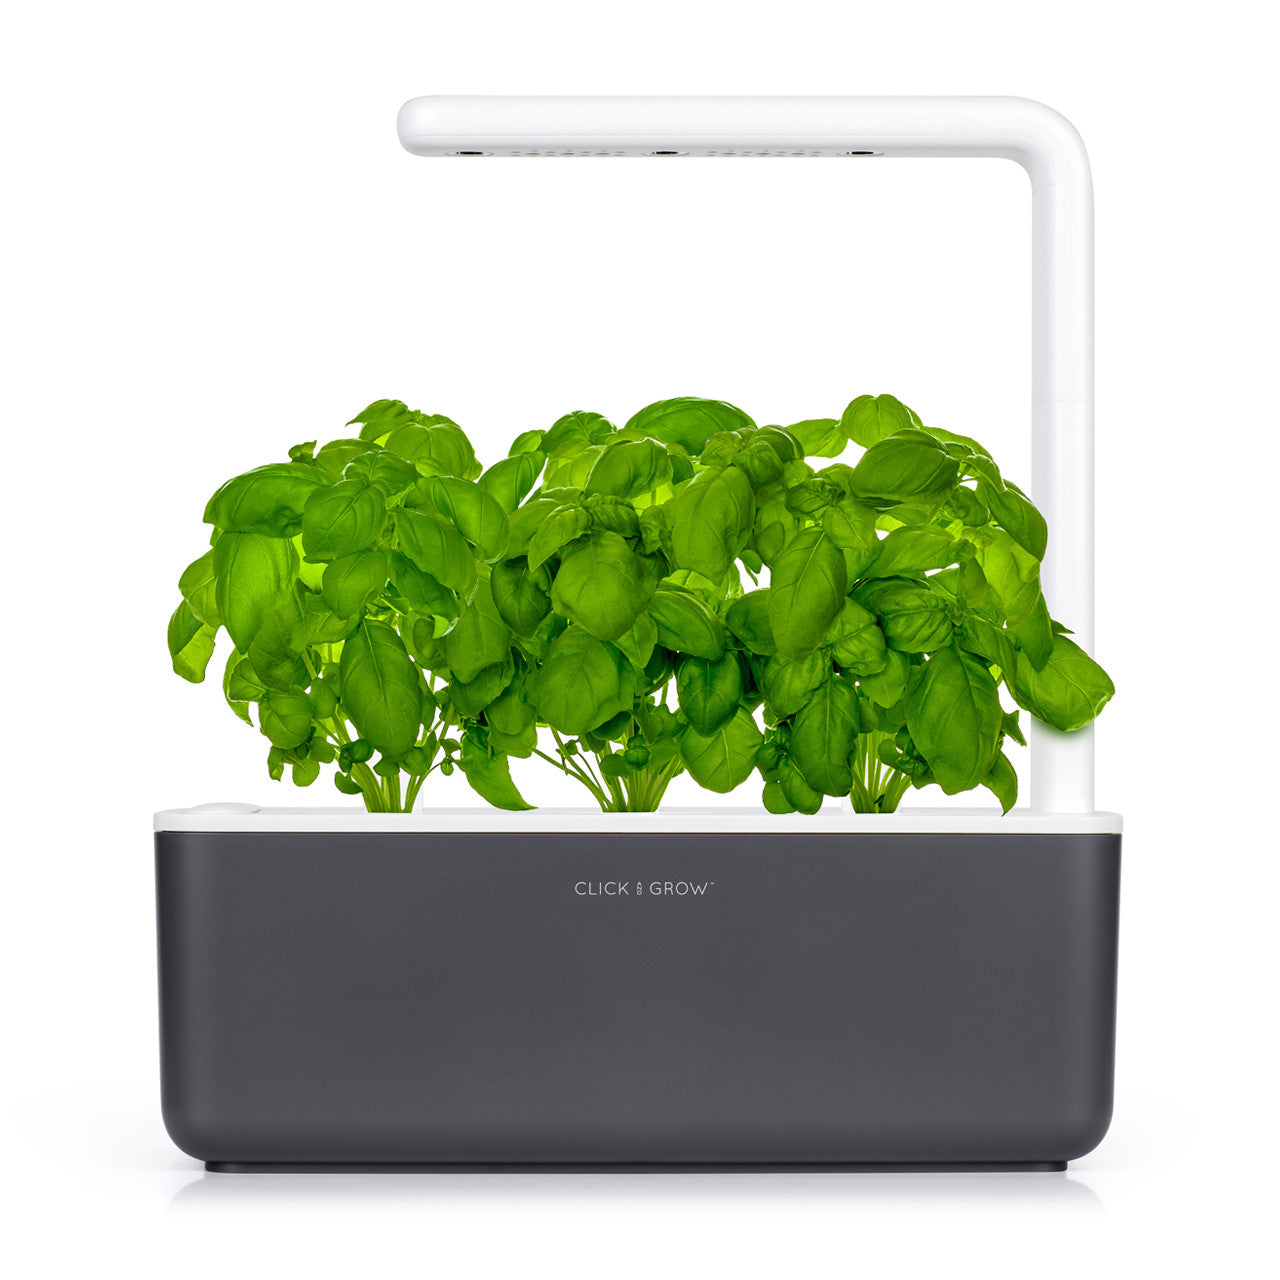 Click & Grow Smart Garden 3. Grow fresh food in your own indoor garden!